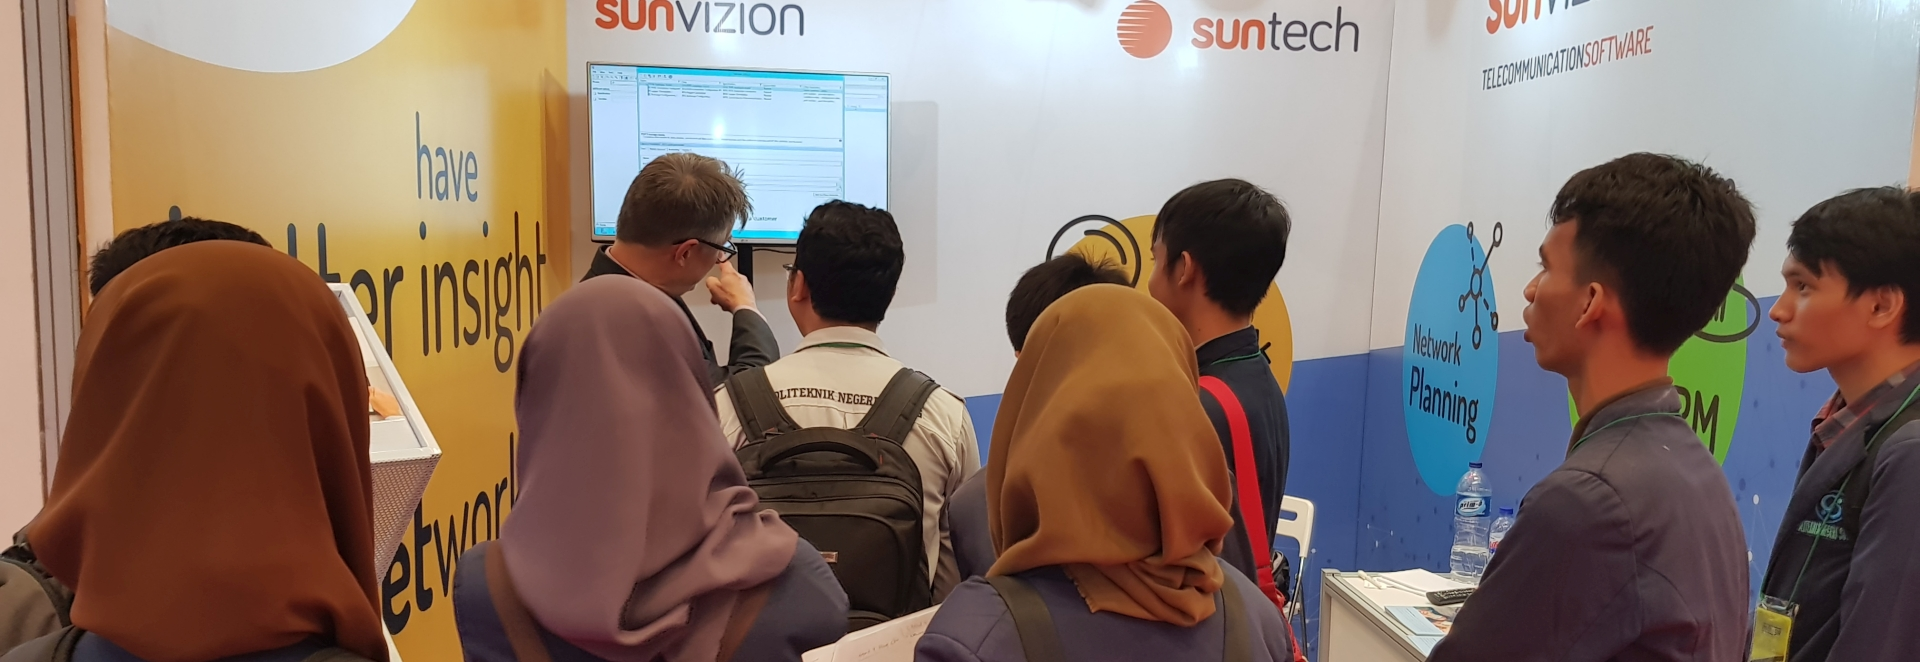 SunVizion na Communic Indonesia 2018